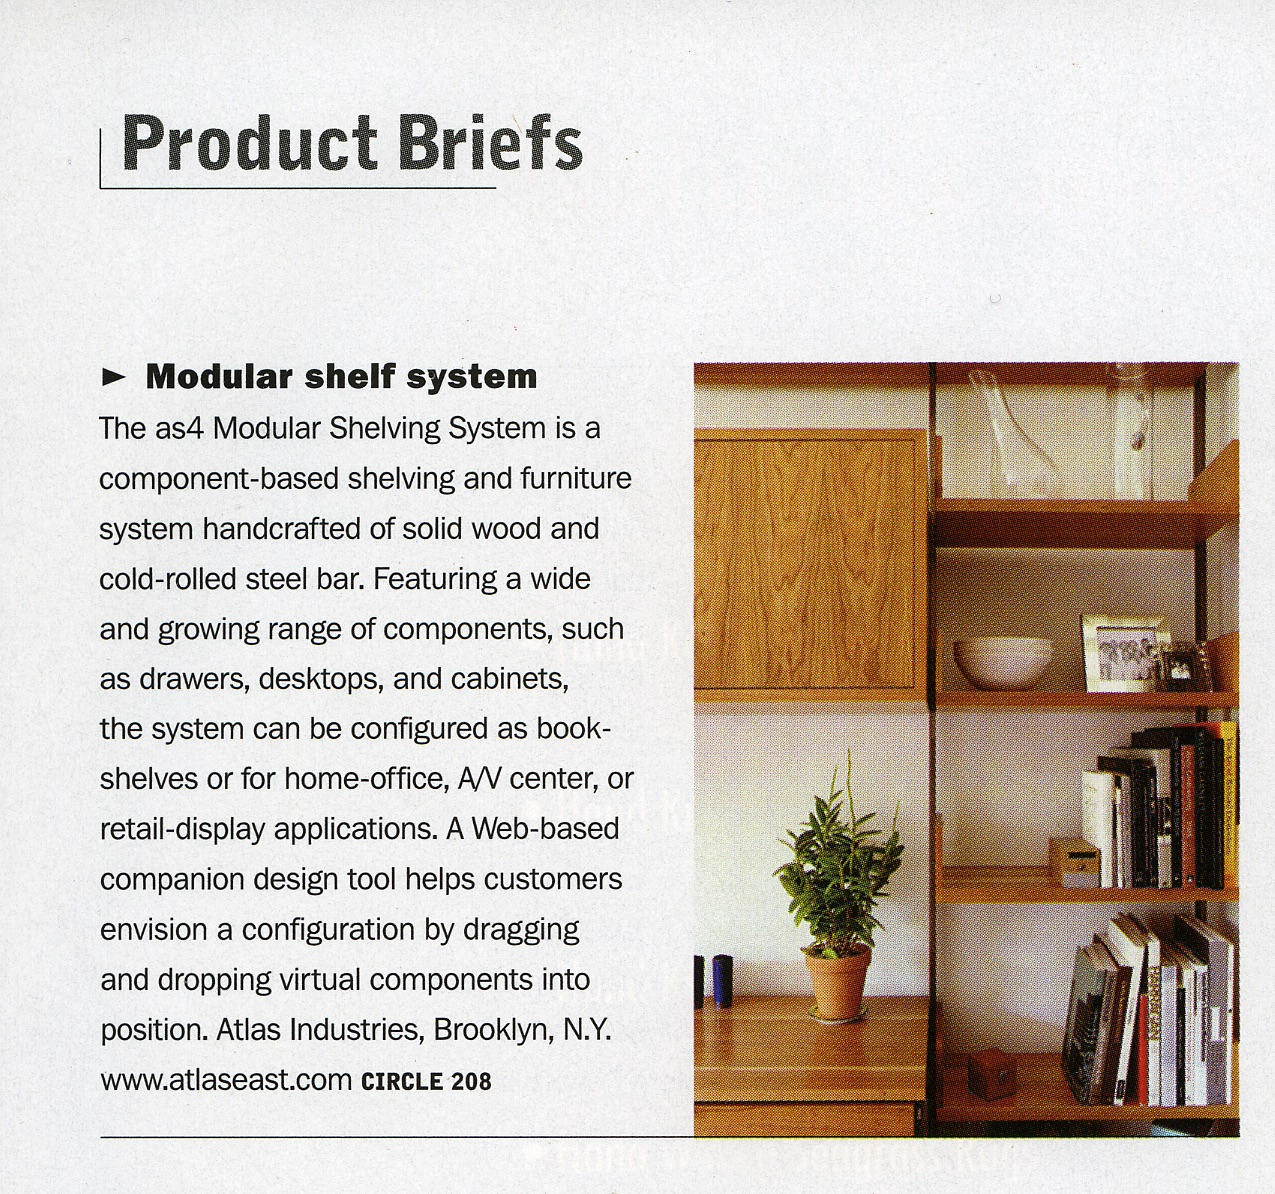 sep 06 product briefs cropped.jpg